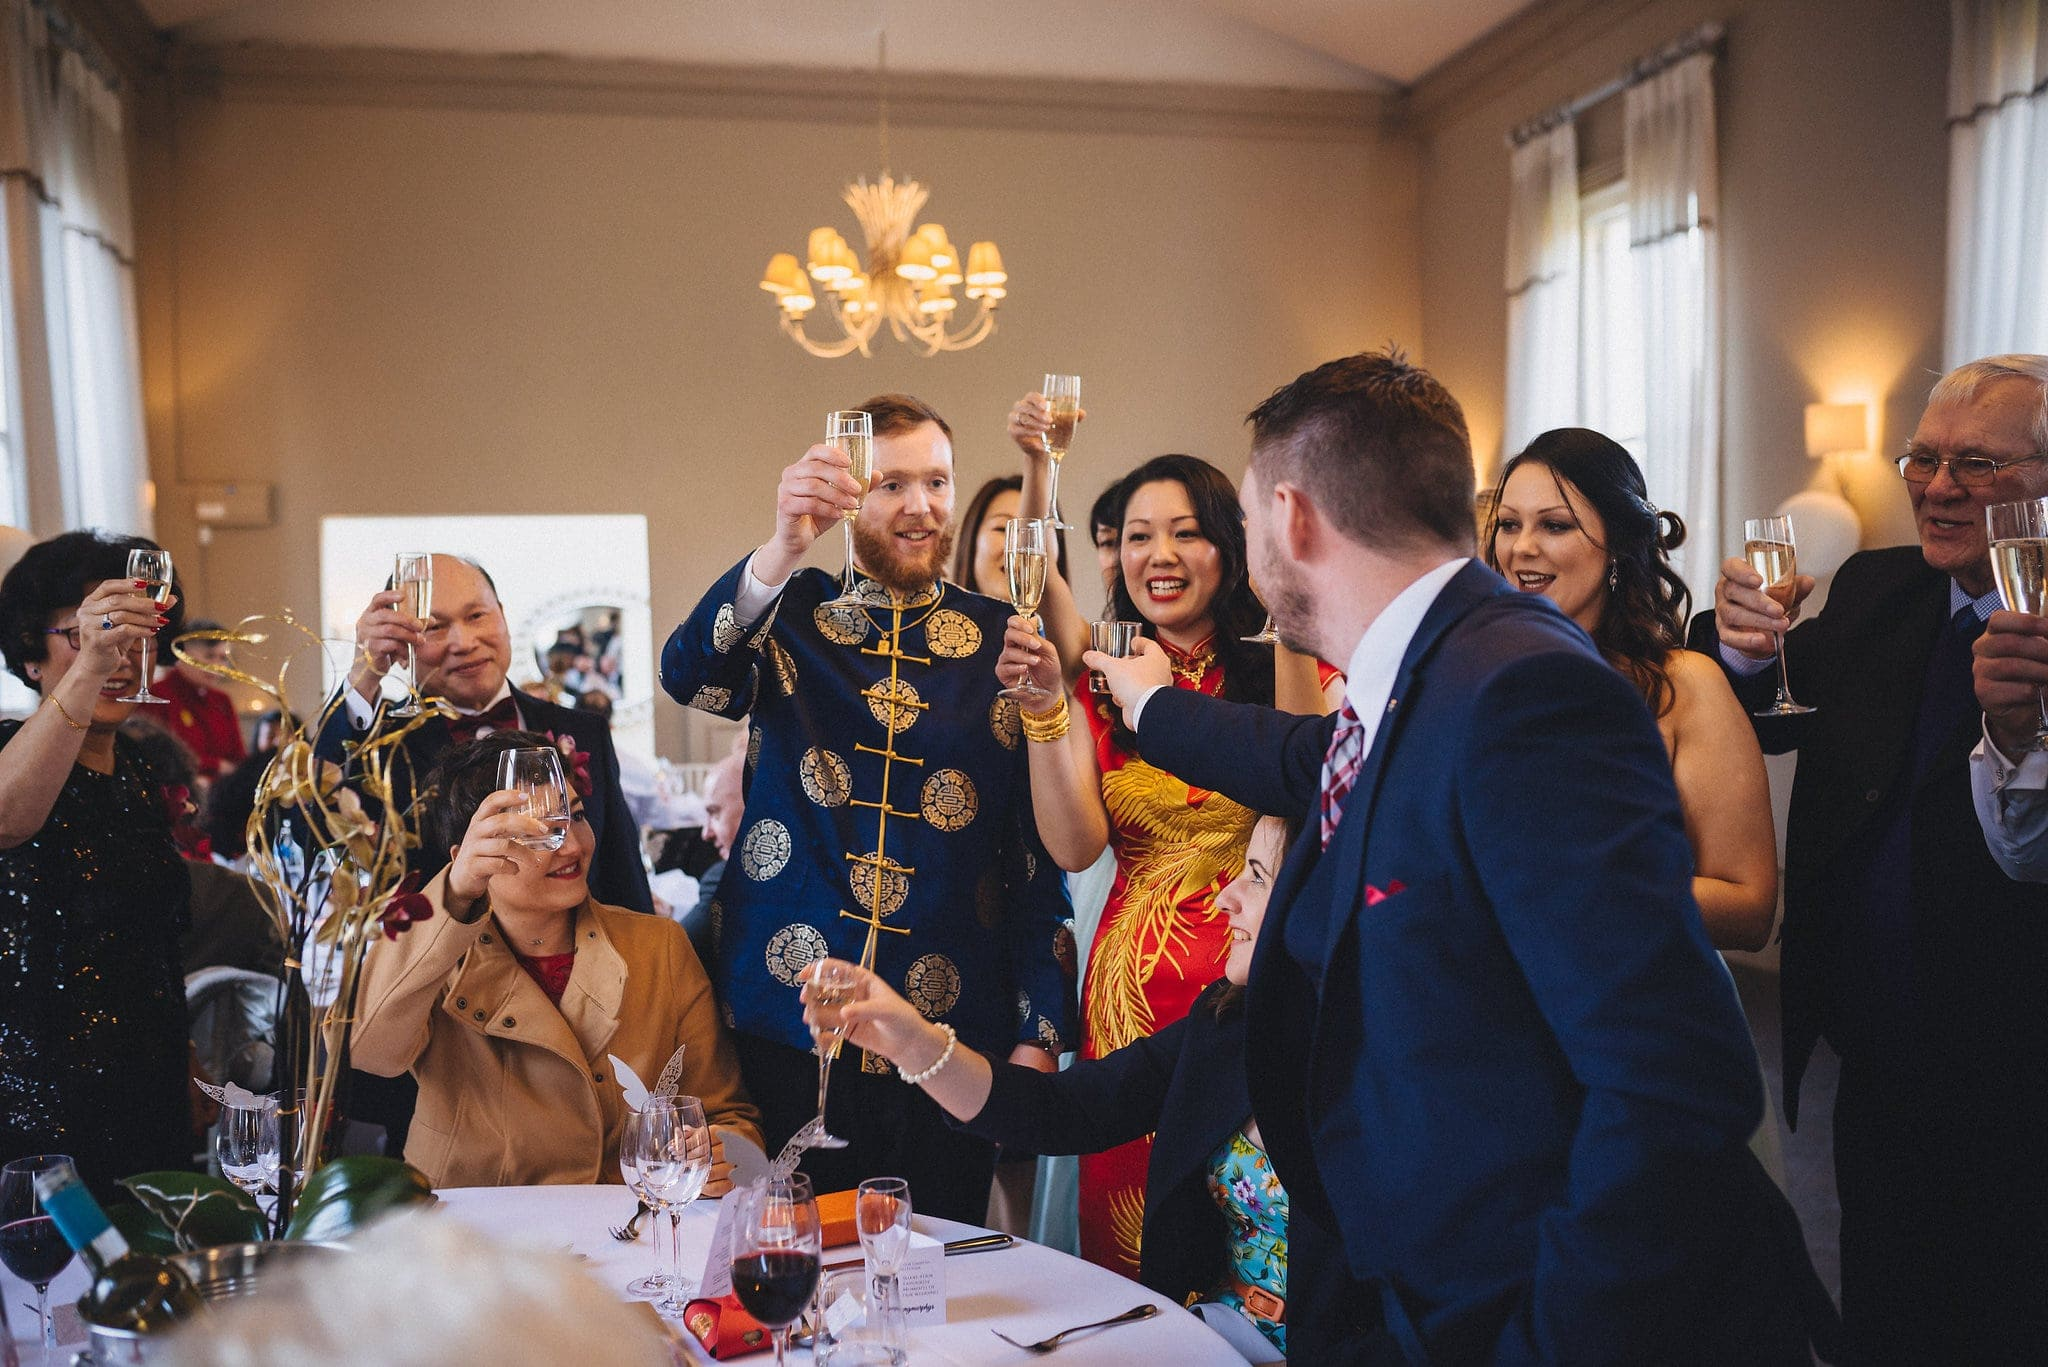 Guests at a Morden Hall wedding toast bride and groom with champagne